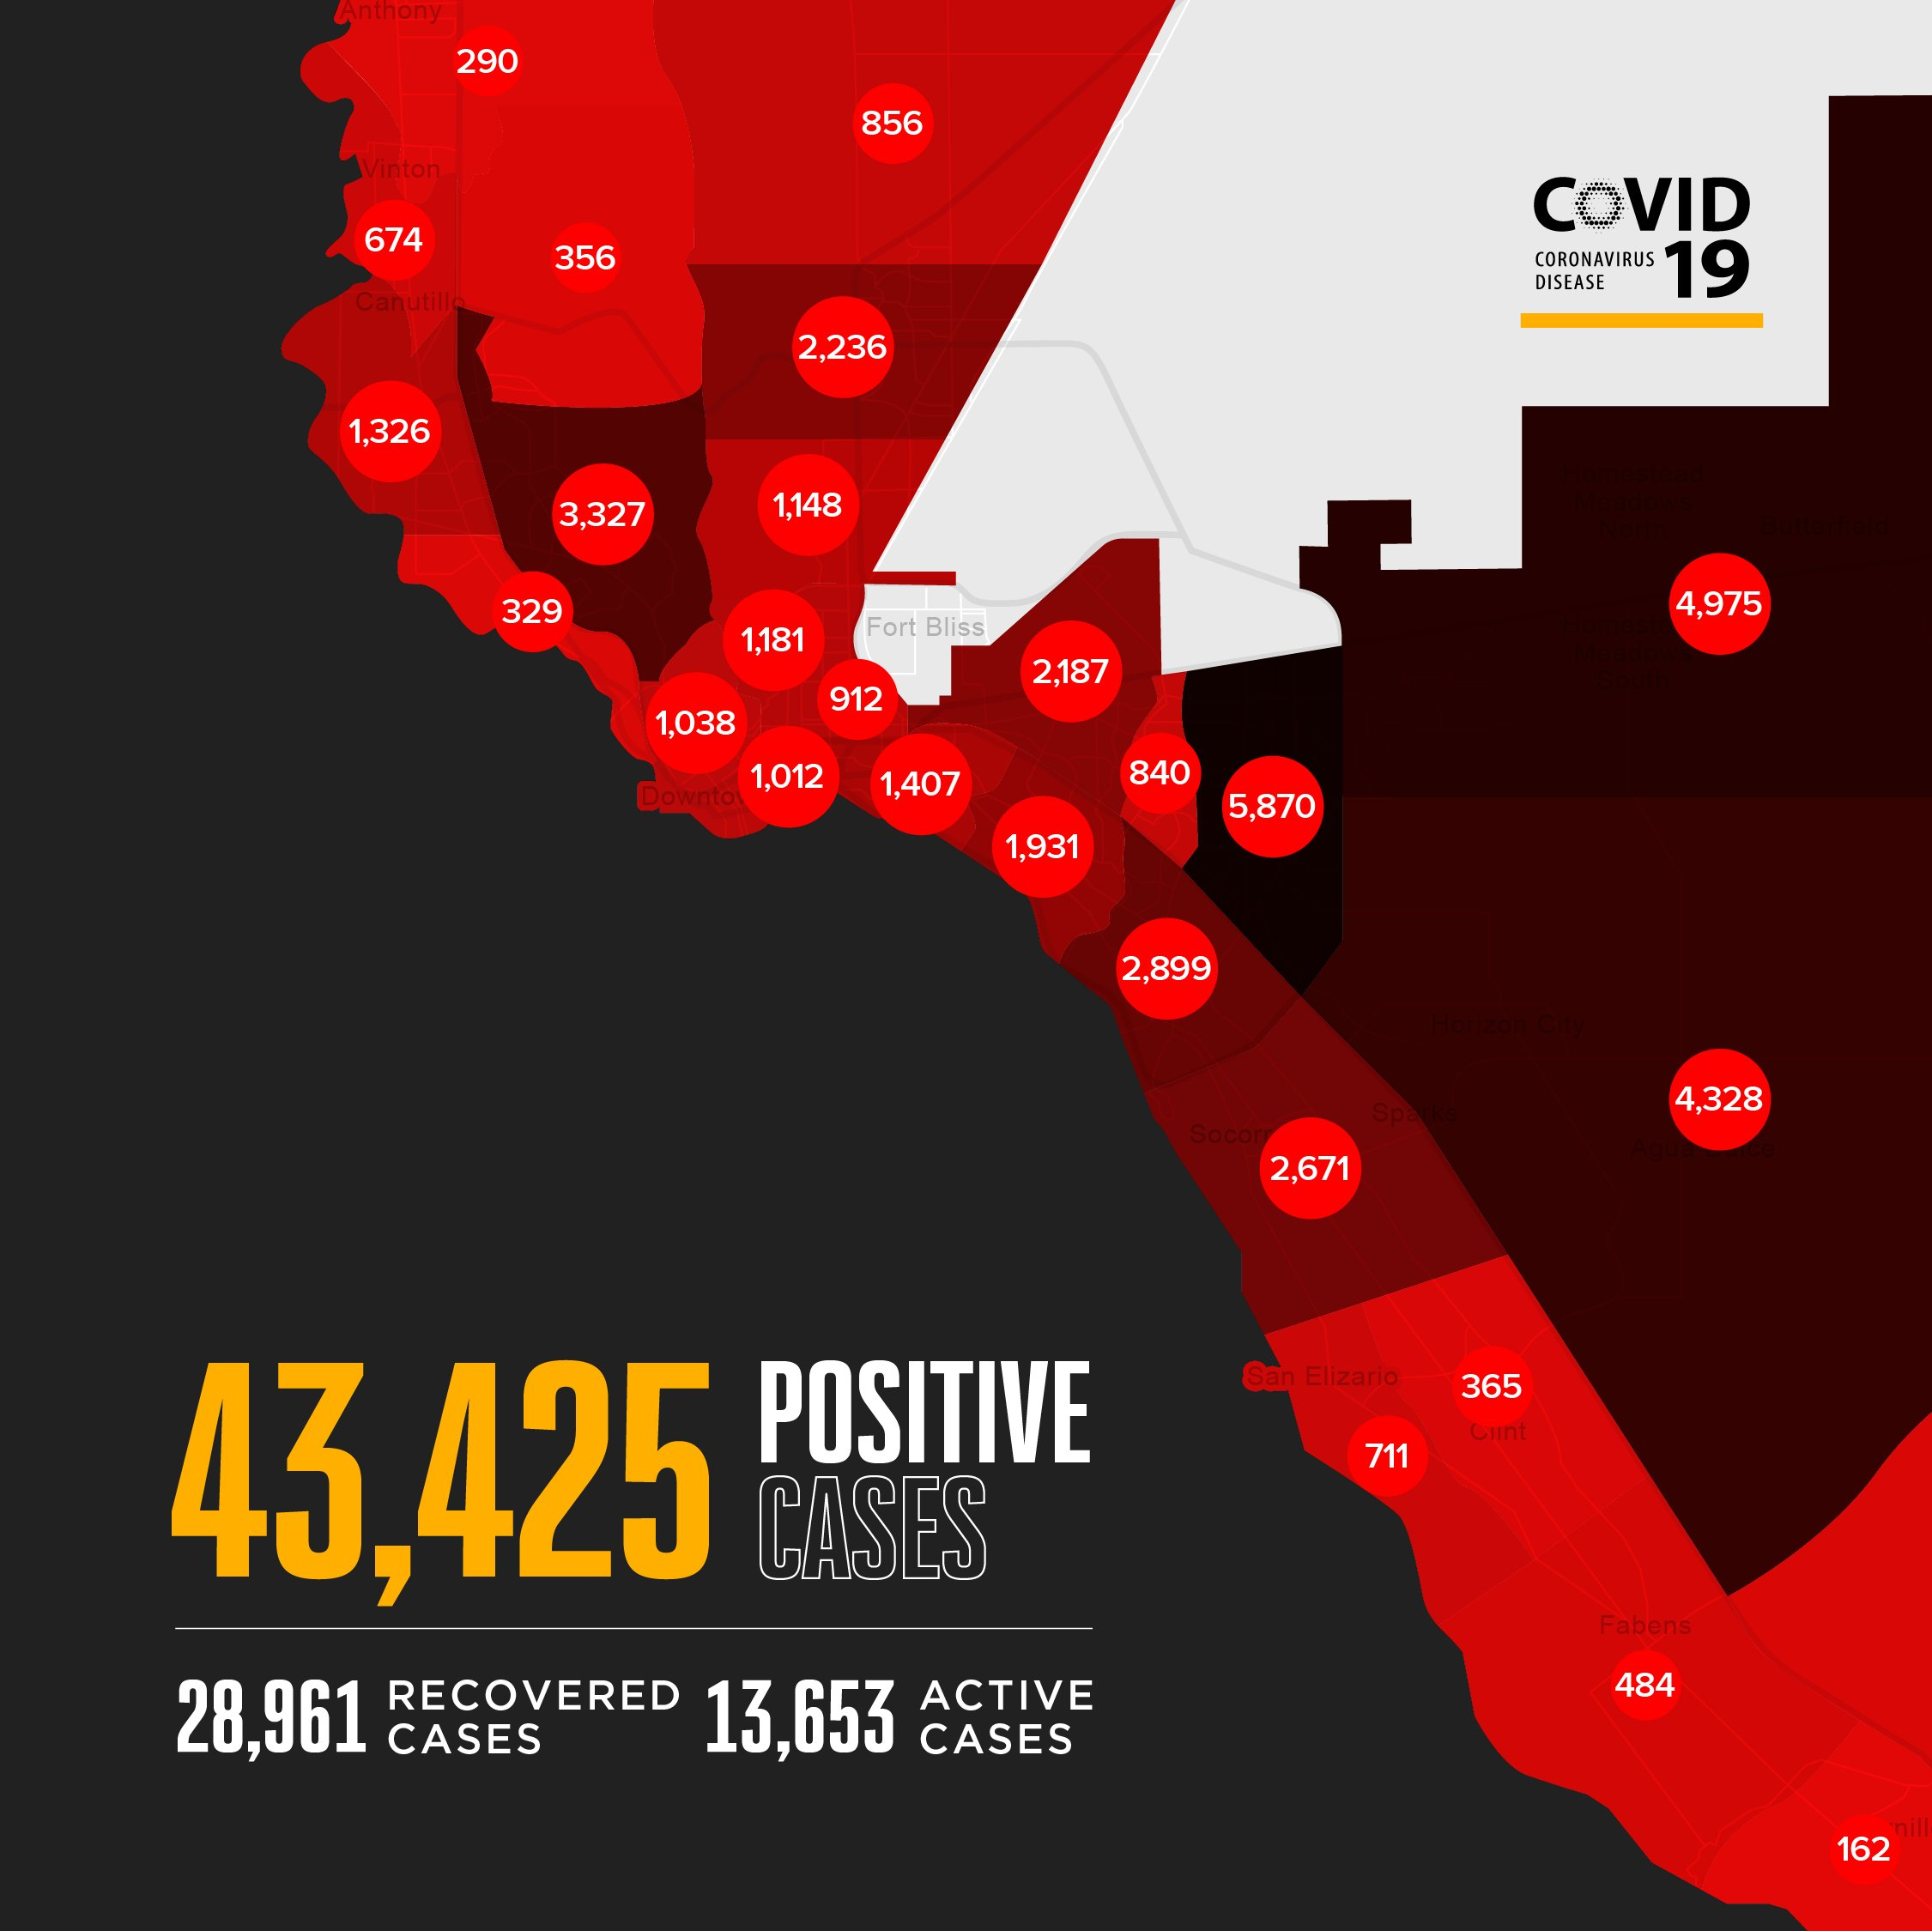 This map shows the cumulative total of positive COVID-19 cases by ZIP codes and the number of cases in parenthesis: 79821 (290), 79835 (674), 79836 (365), 79838 (484), 79849 (711), 79853 (162), 79901 (1,012), 79902 (1,038), 79903 (912), 79904 (1,148), 79905 (1,407), 79907 (2,899), 79911 (356), 79912 (3,237), 79915 (1,931), 79922 (329), 79924 (2,236), 79925 (2,187), 79927 (2,671), 79928 (4,328), 79930 (1,181), 79932 (1,326), 79934 (856), 79935 (840), 79936 (5,870), 79938 (4,975)